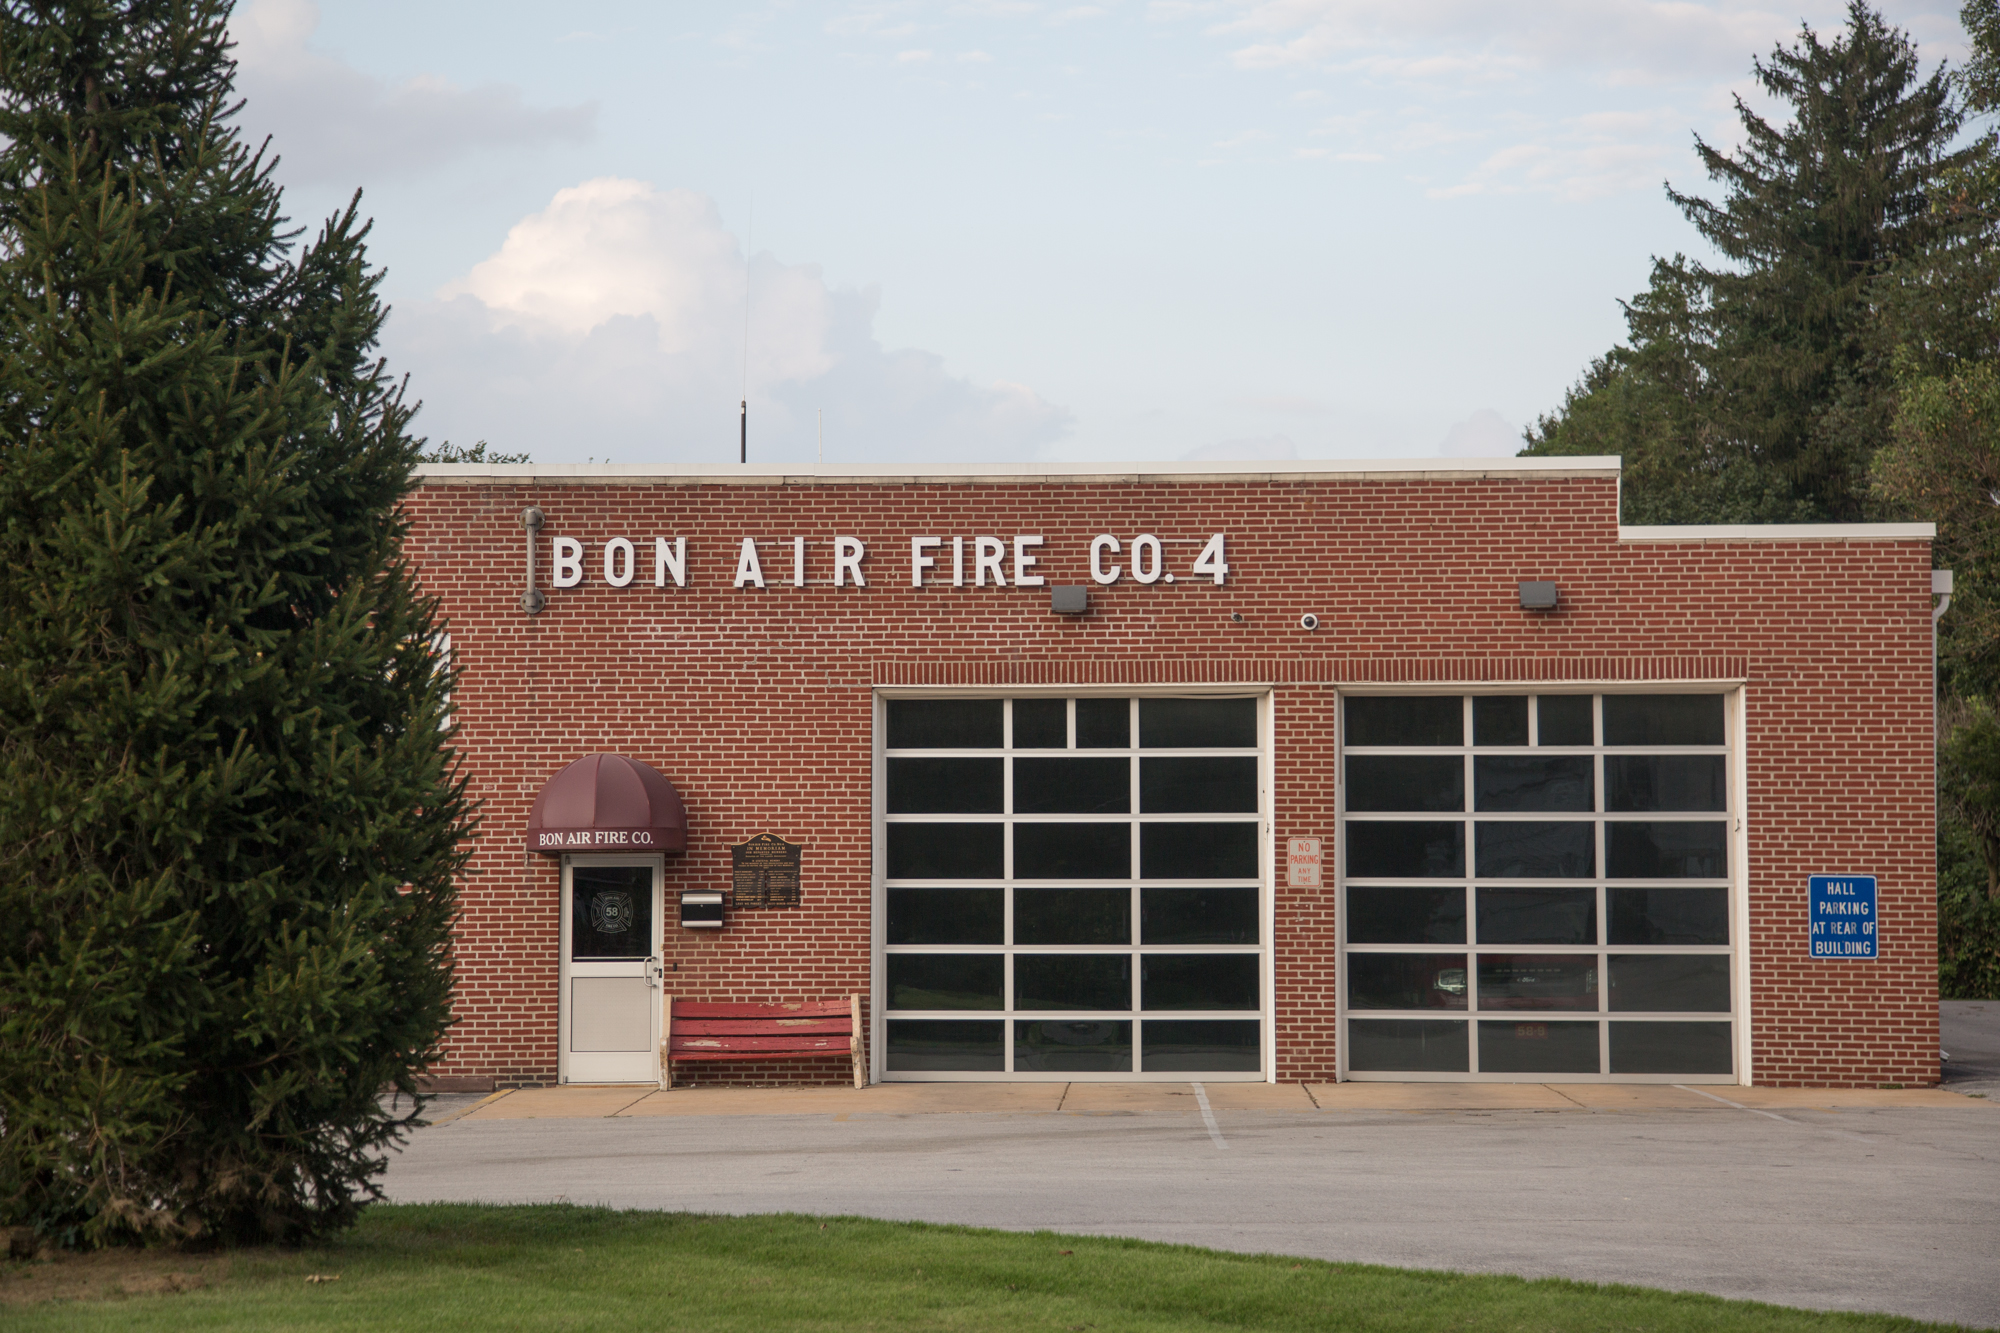 Haverford reinstates Bon Air Fire Company after flap over member with ties to extremist group